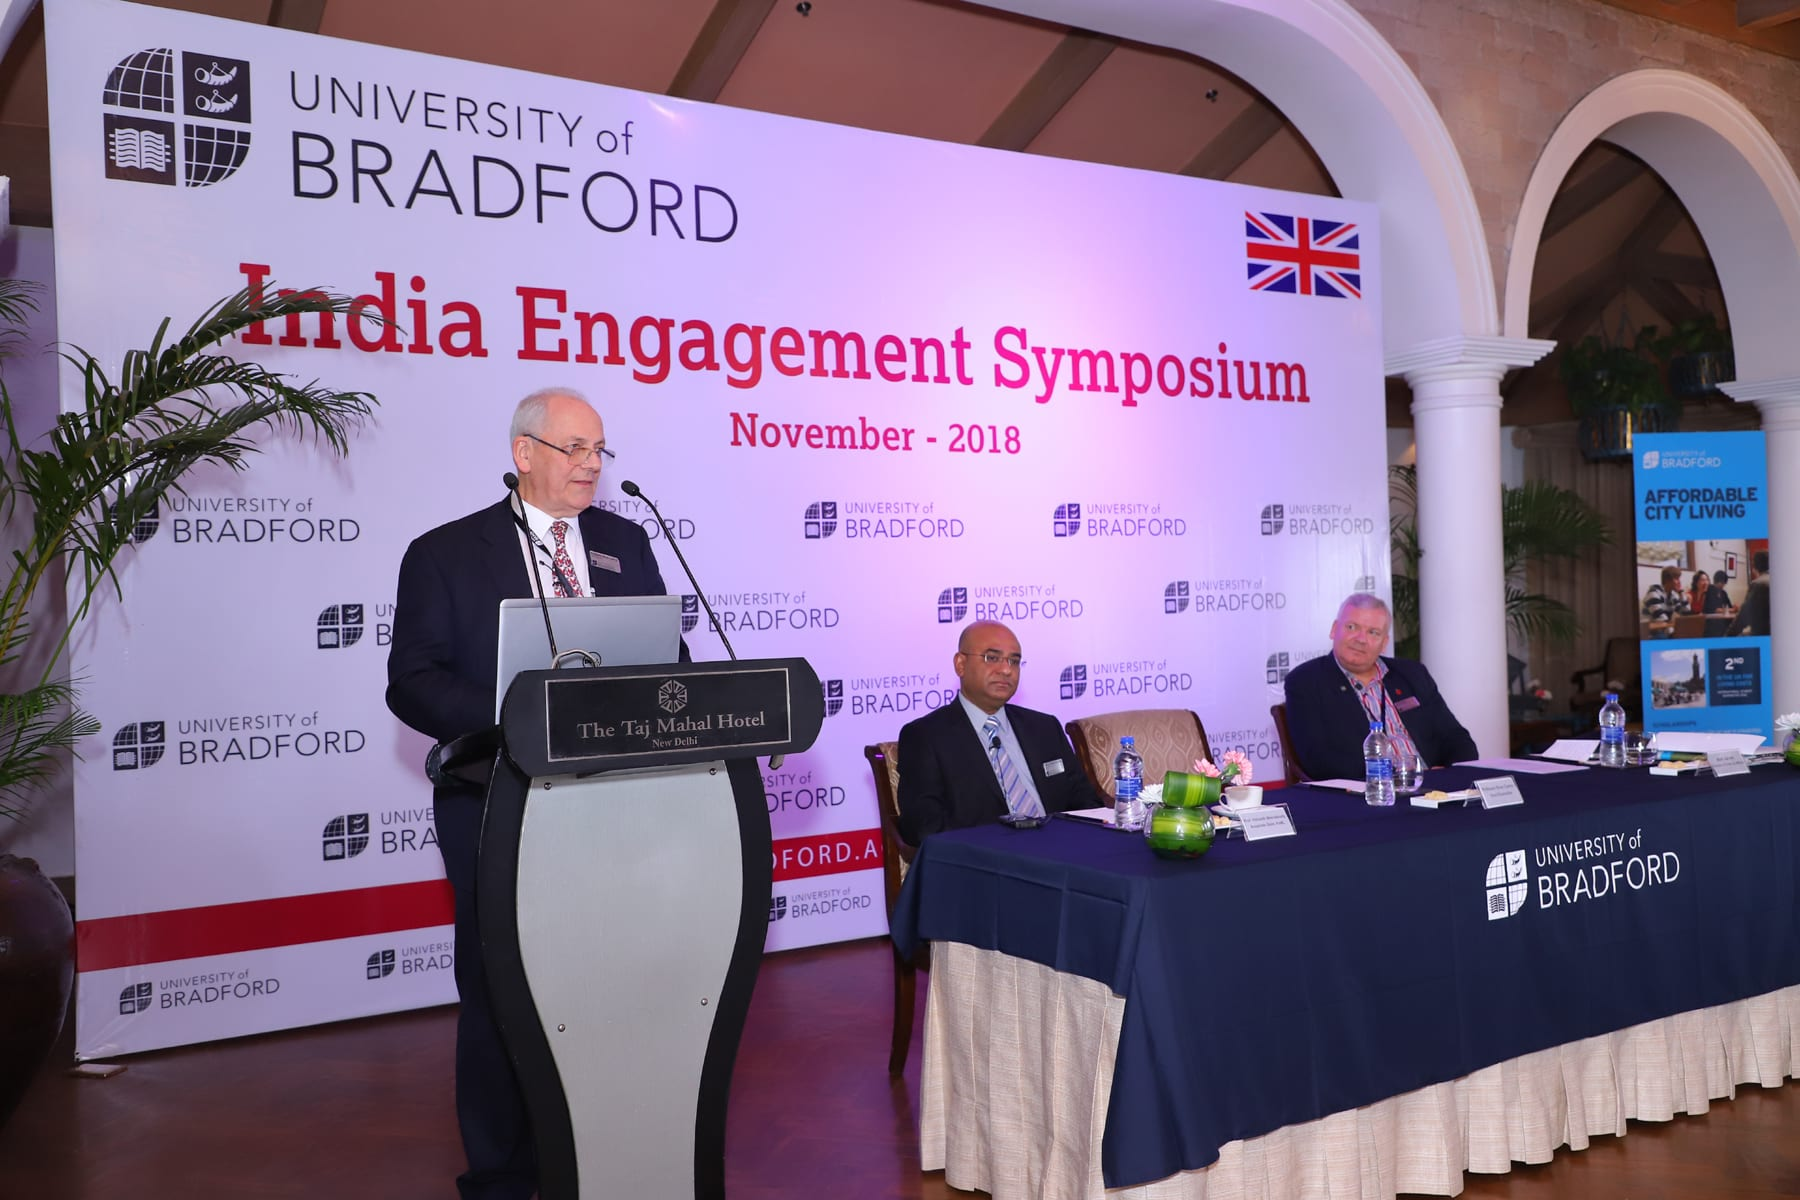 University of Bradford's 'Leadership in the Age of Digital Era' workshop in Delhi emphasizes on the need for educational institutions to enhance leadership skills of students